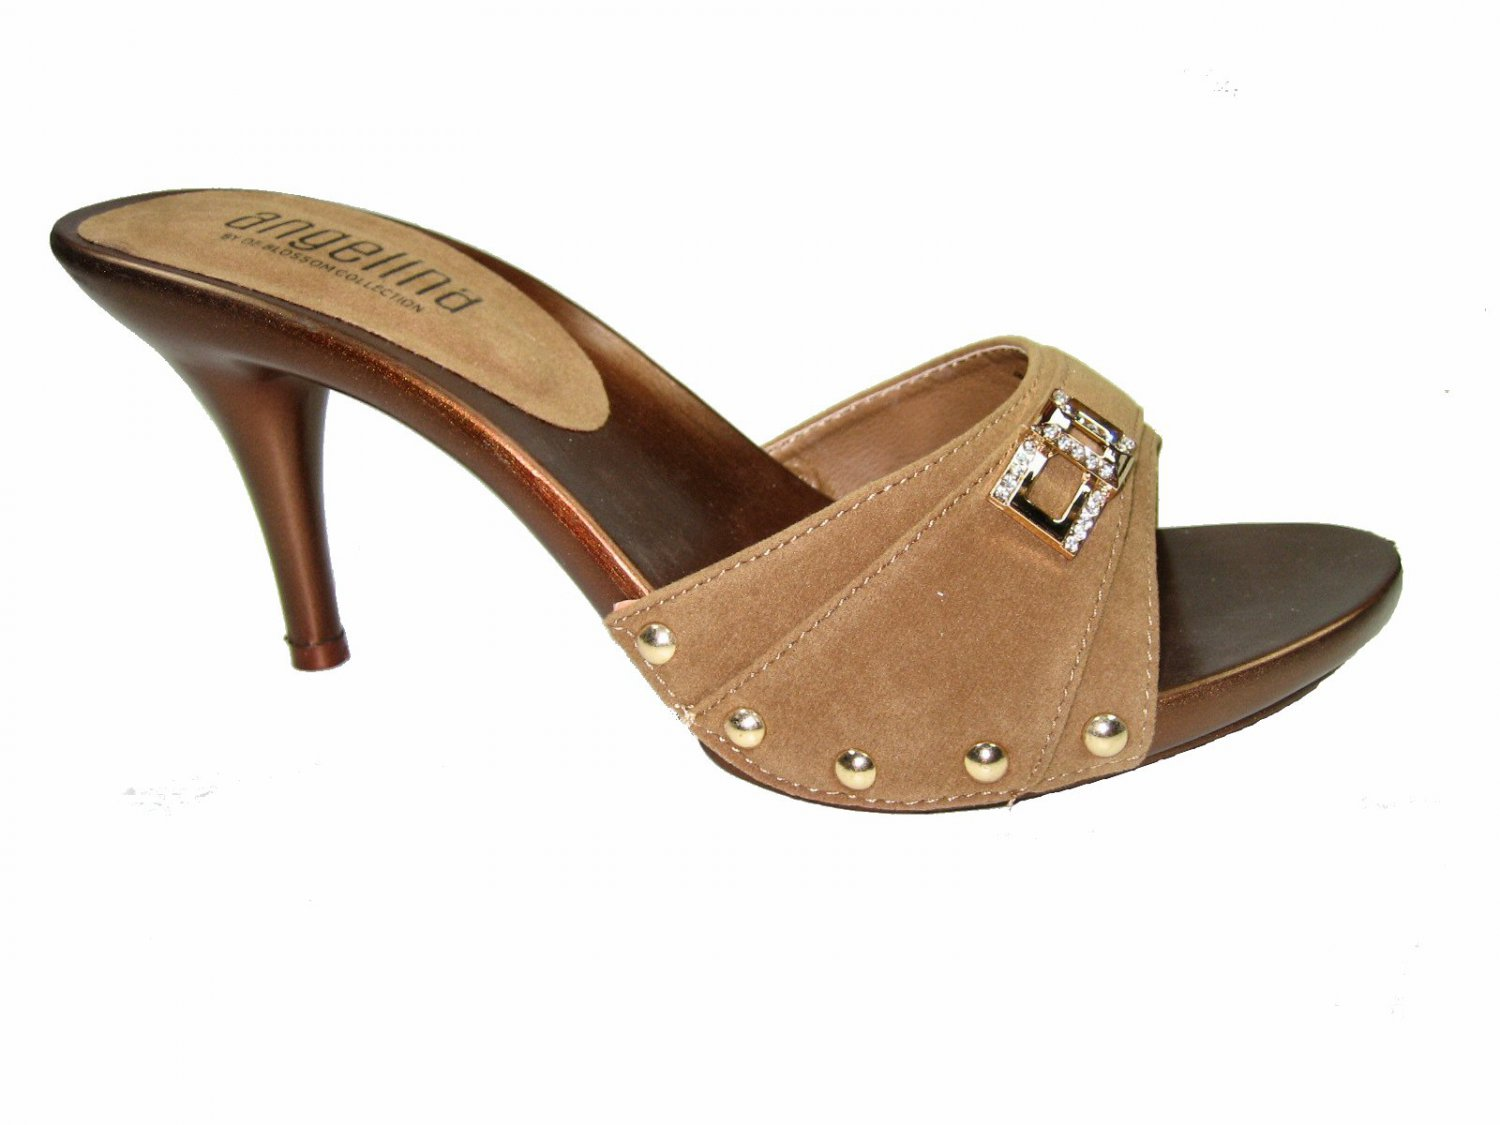 Blossom vote-56 one band slides mules 3.5 inch stiletto heel sandals vegan suede tan size 6